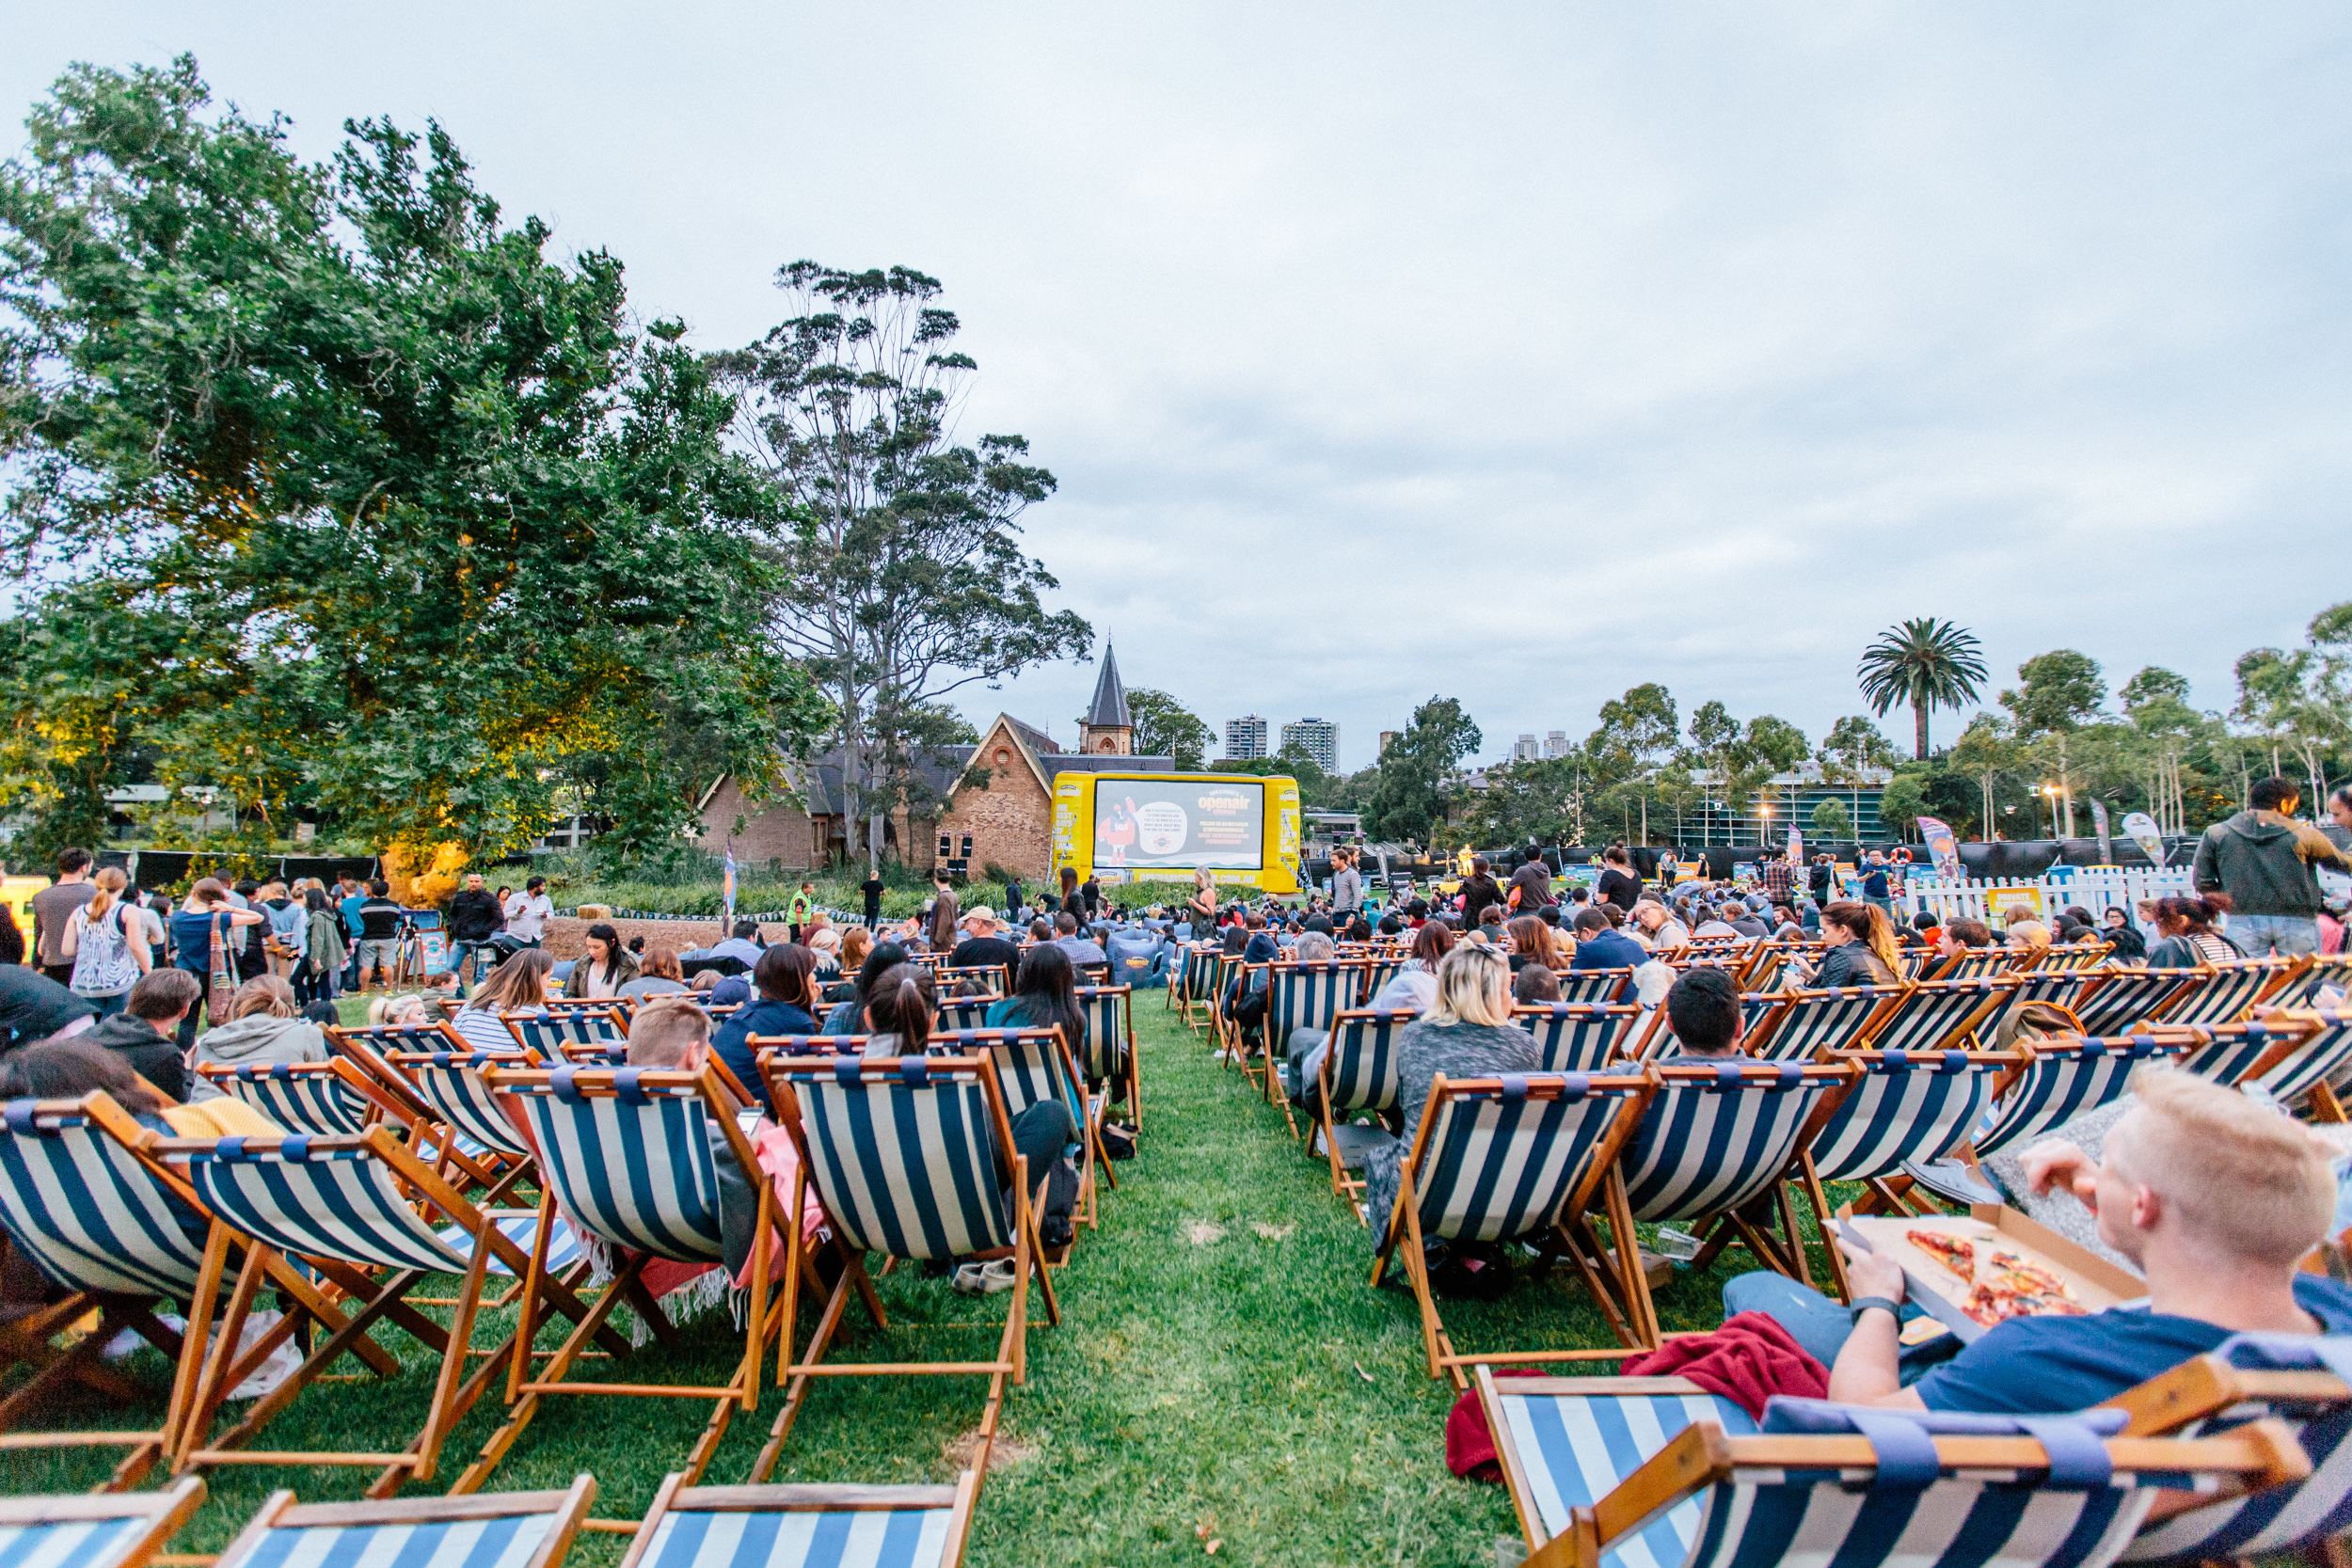 Win a double pass to Hell or High Water at Ben & Jerry's Openair Cinema